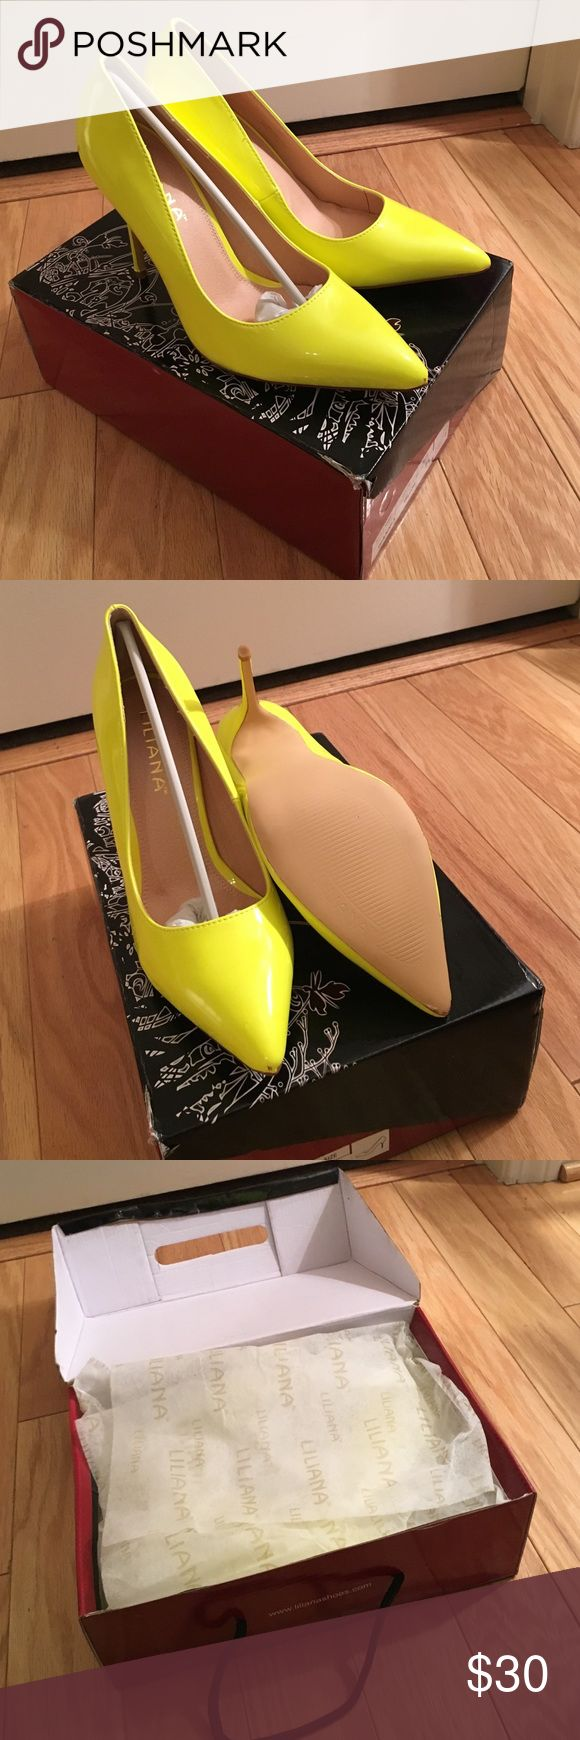 LILIANA 👠 Neon Pump (NEW) Never Worn Liliana Neon Pumps |Size 7.5| Fits True to Size| Neon Yellow | Patent Leather| Box Included Liliana Shoes Heels